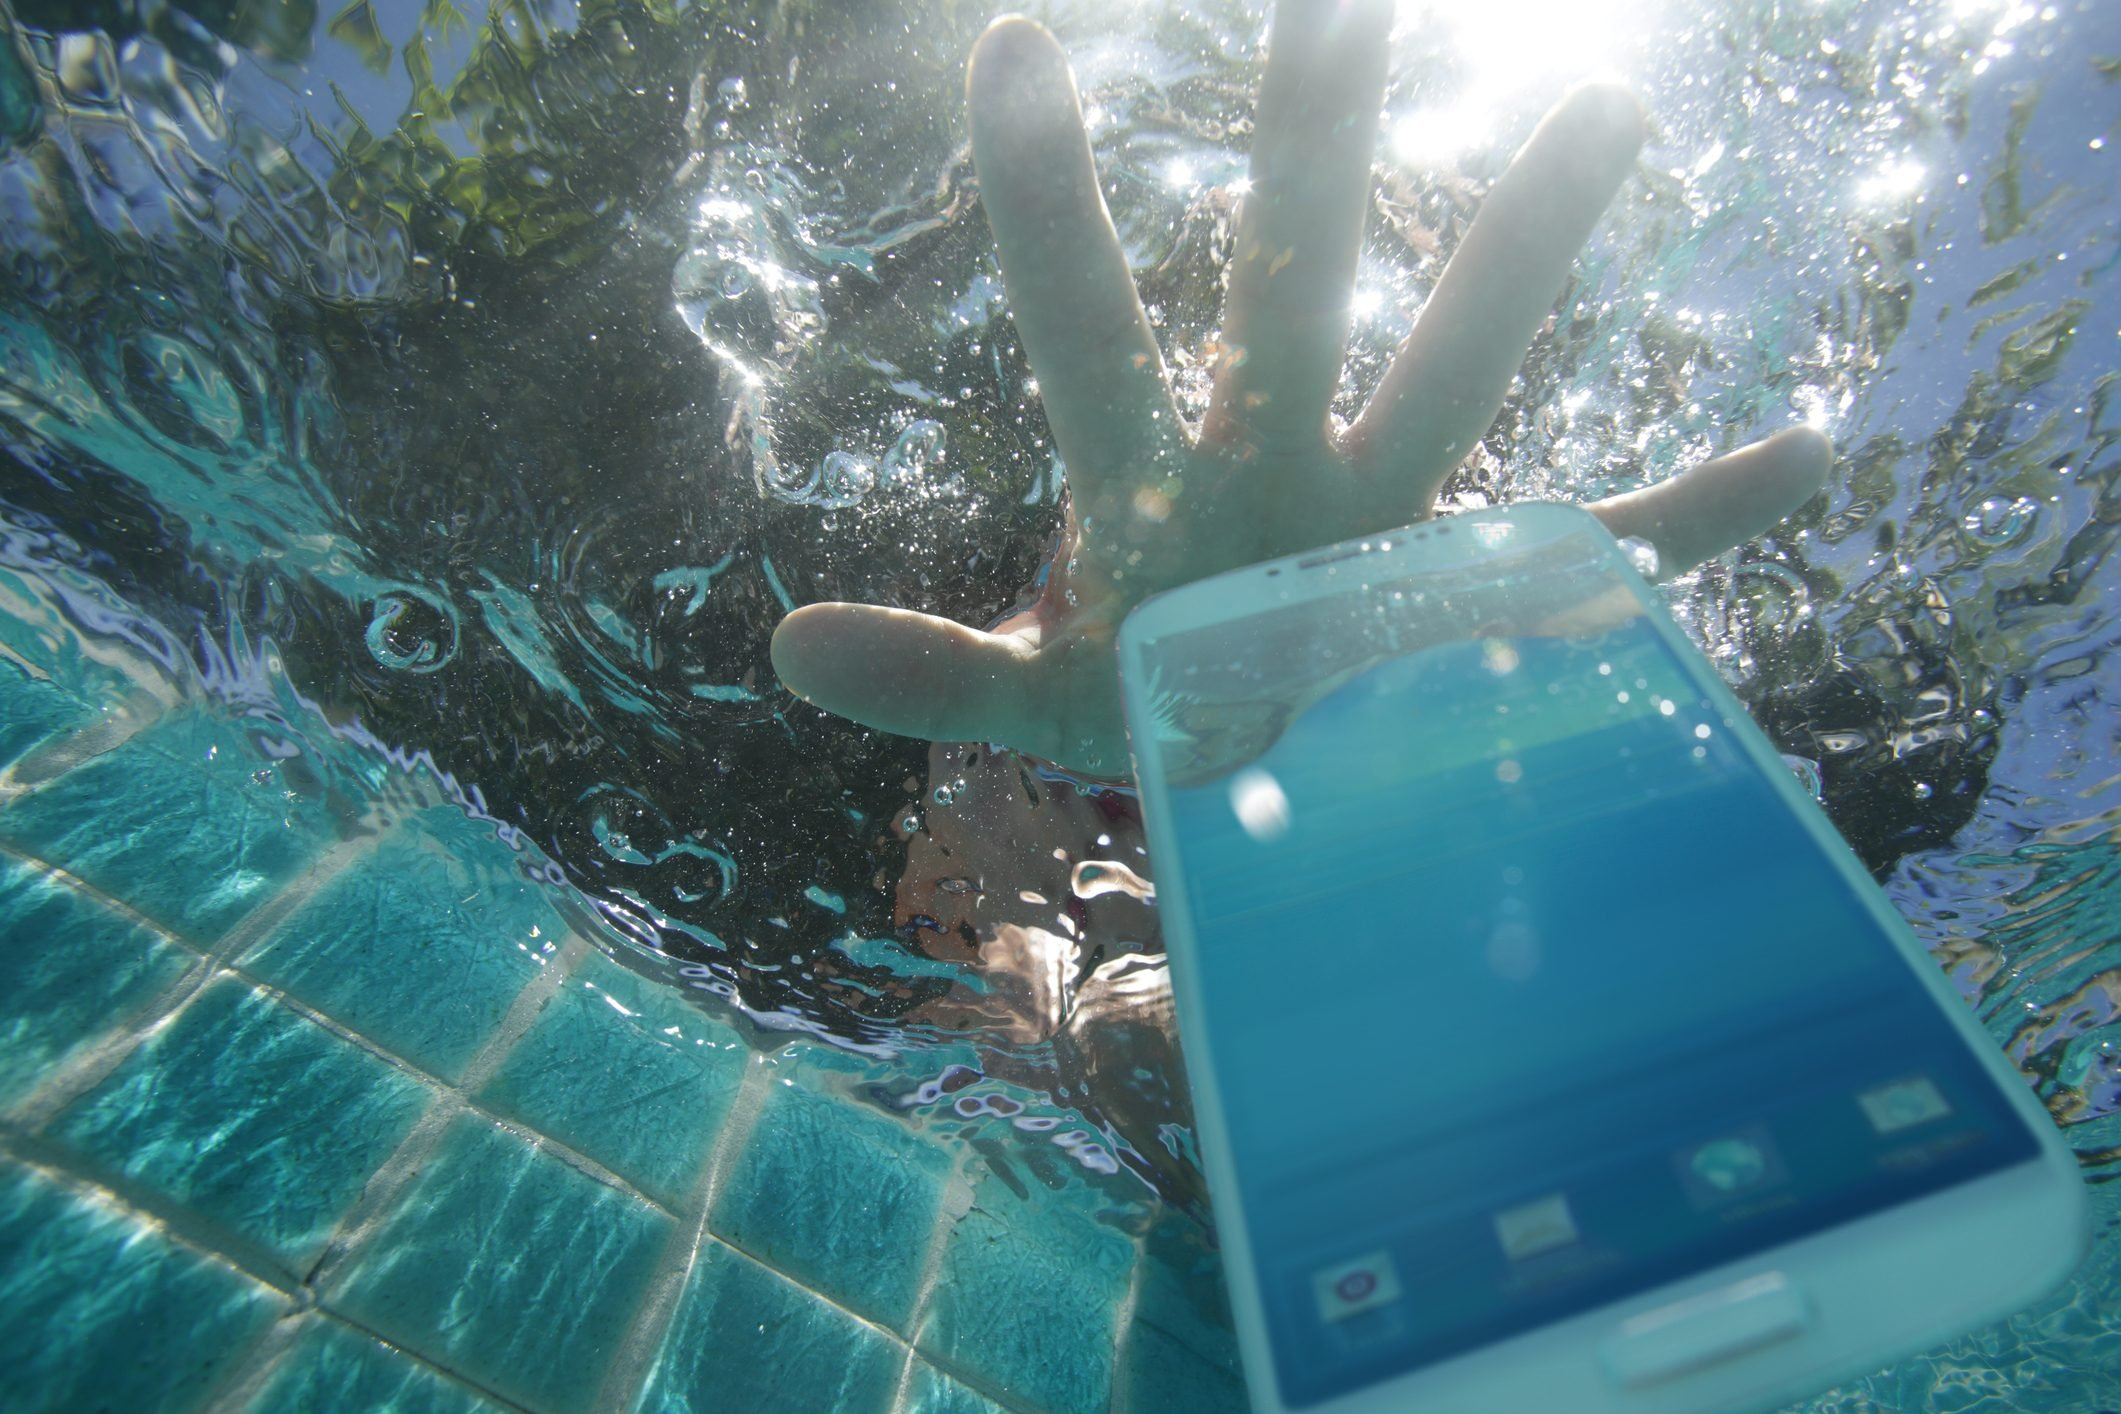 Hand reaching for phone dropped in pool